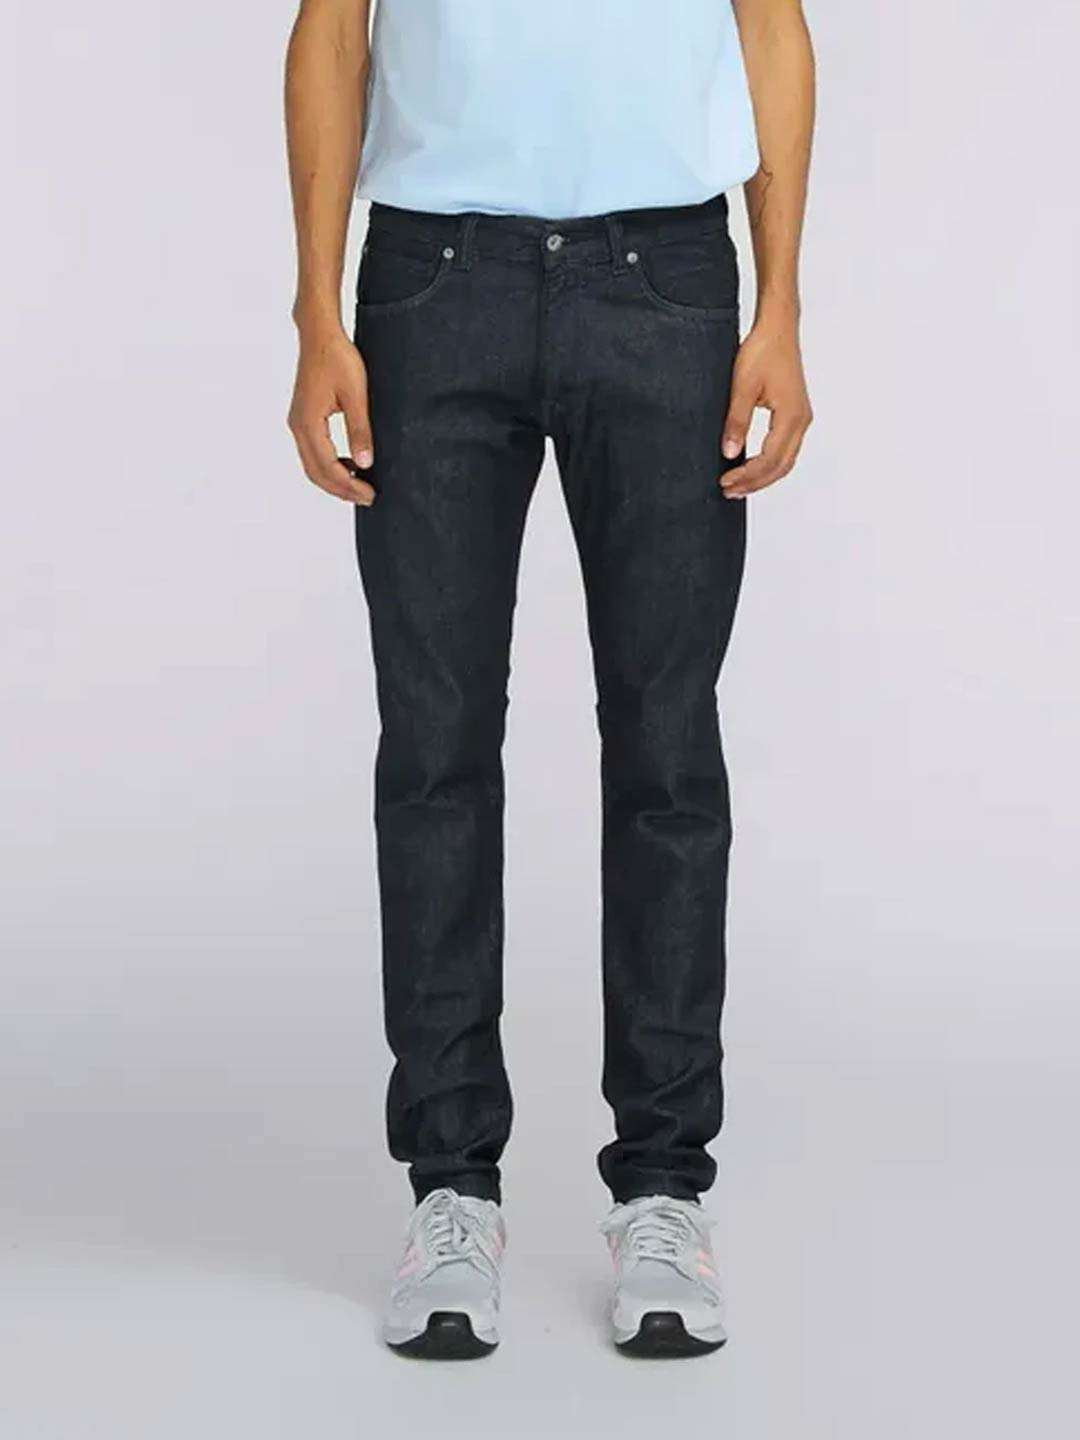 EDWIN ED-85 Red Listed Jeans - Revolver Menswear Bawtry